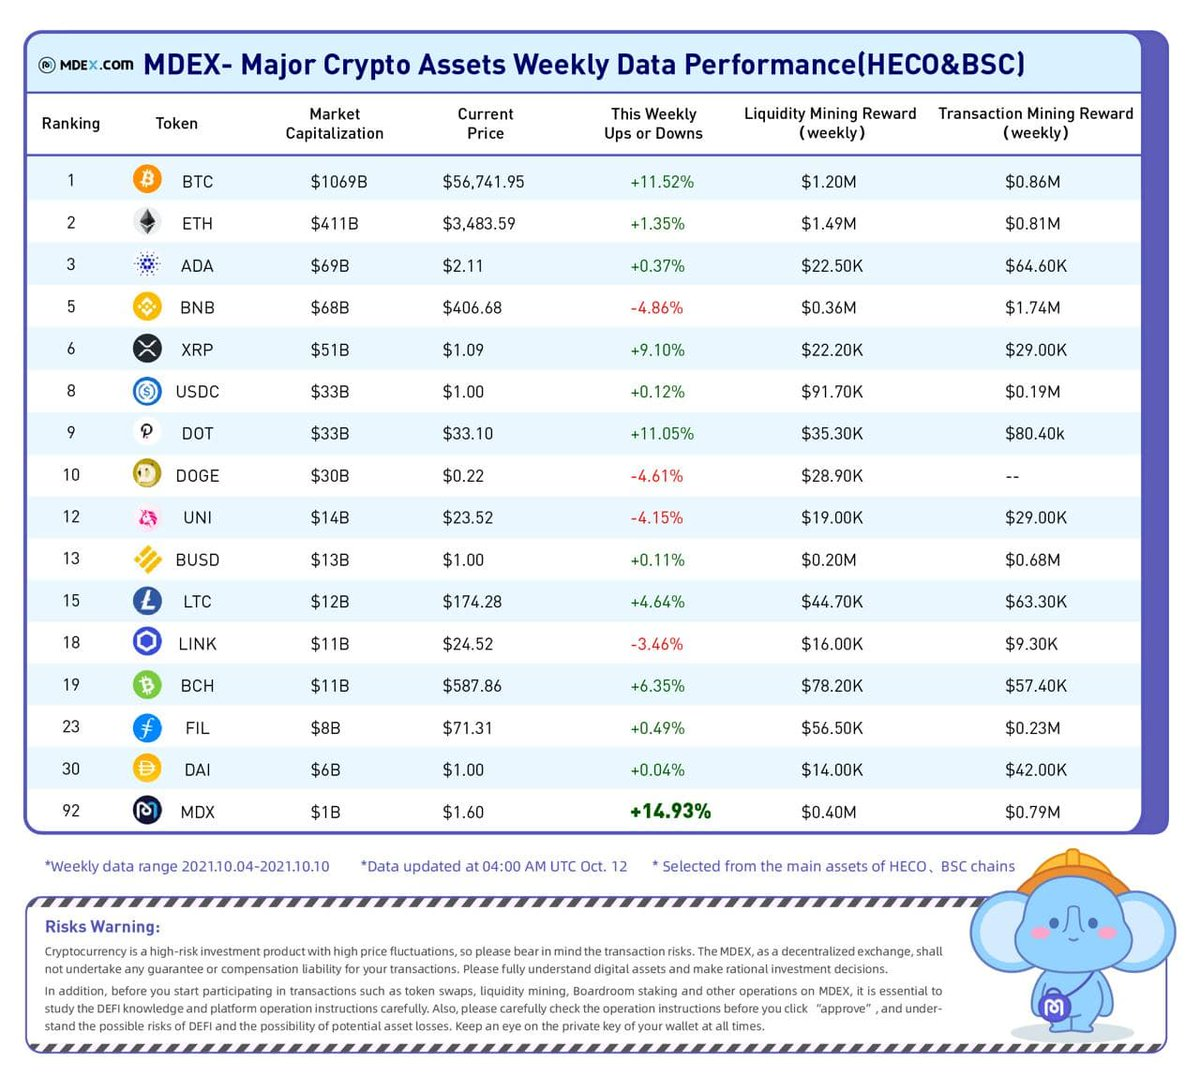 📑The Major Crypto Assets Weekly Data Performance on #HECO & #BSC. 📆From Oct 4, 2021-Oct 10, 2021. ✅Made by: MDEX team. #MDEX #CryptoAssetsWeeklyData #MDX